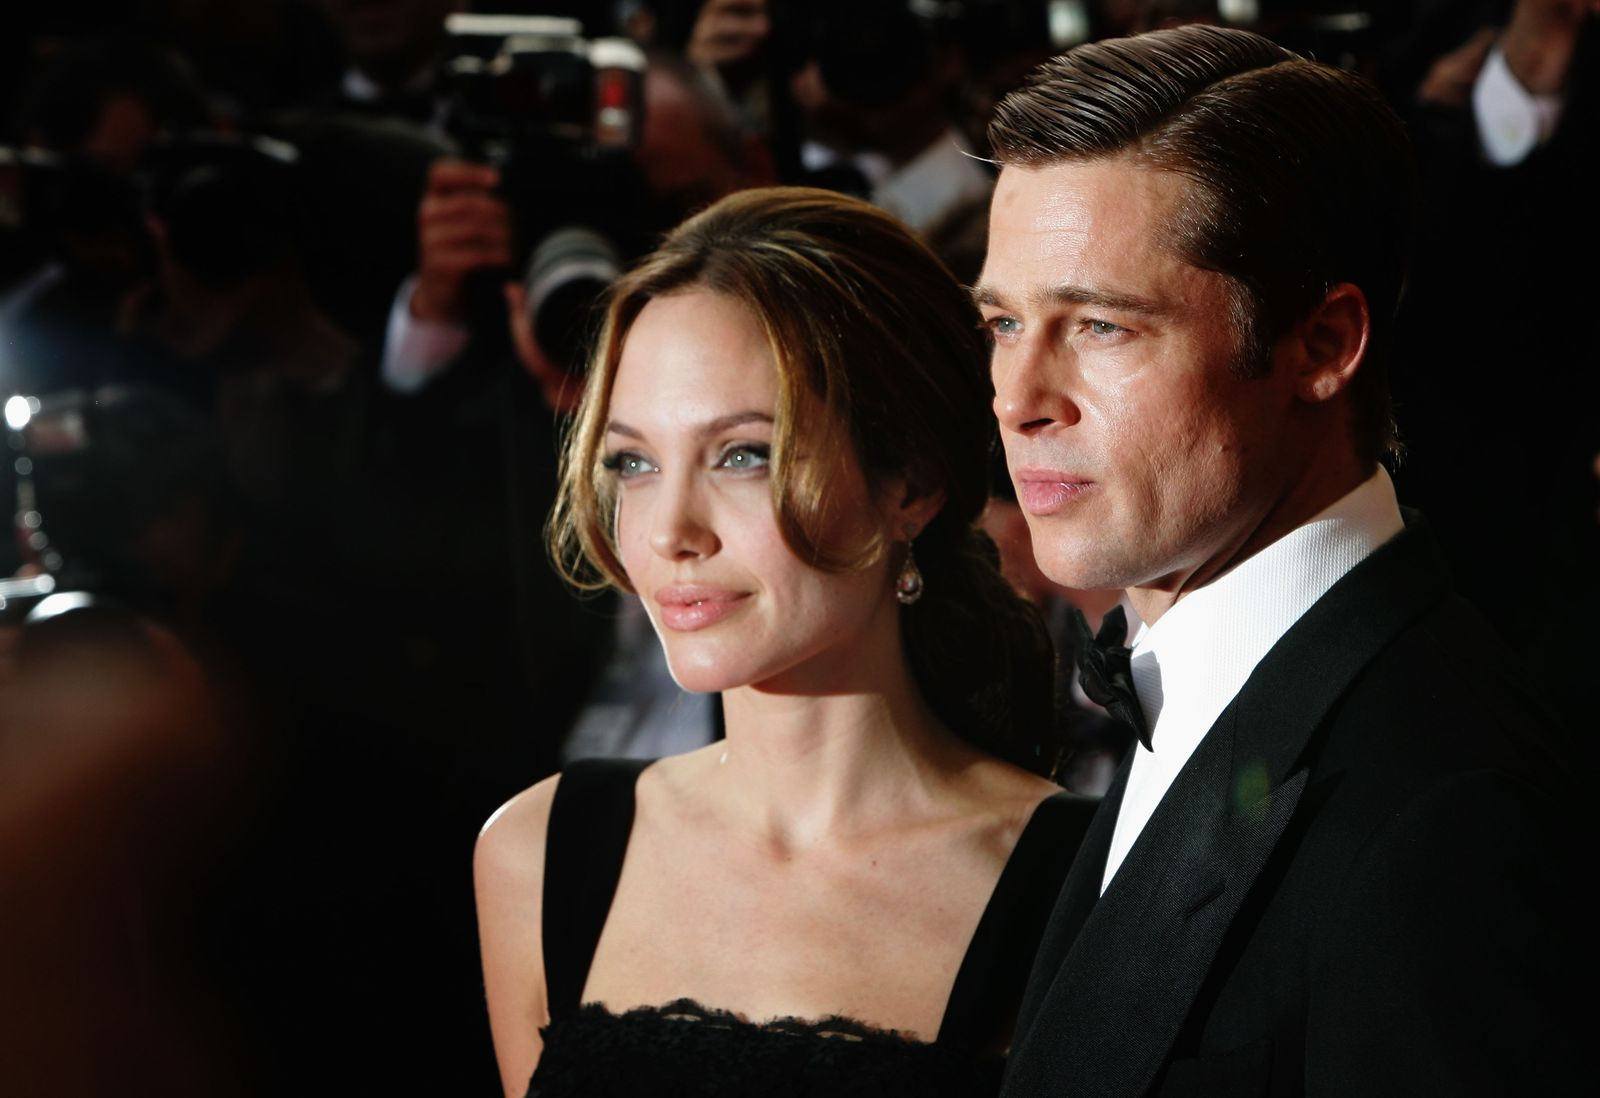 """Brad Pitt and Angelina Jolie at the premiere of """"A Mighty Heart"""" during the 60th International Cannes Film Festival on May 21, 2007 in Cannes, France.   Photo: Getty Images"""